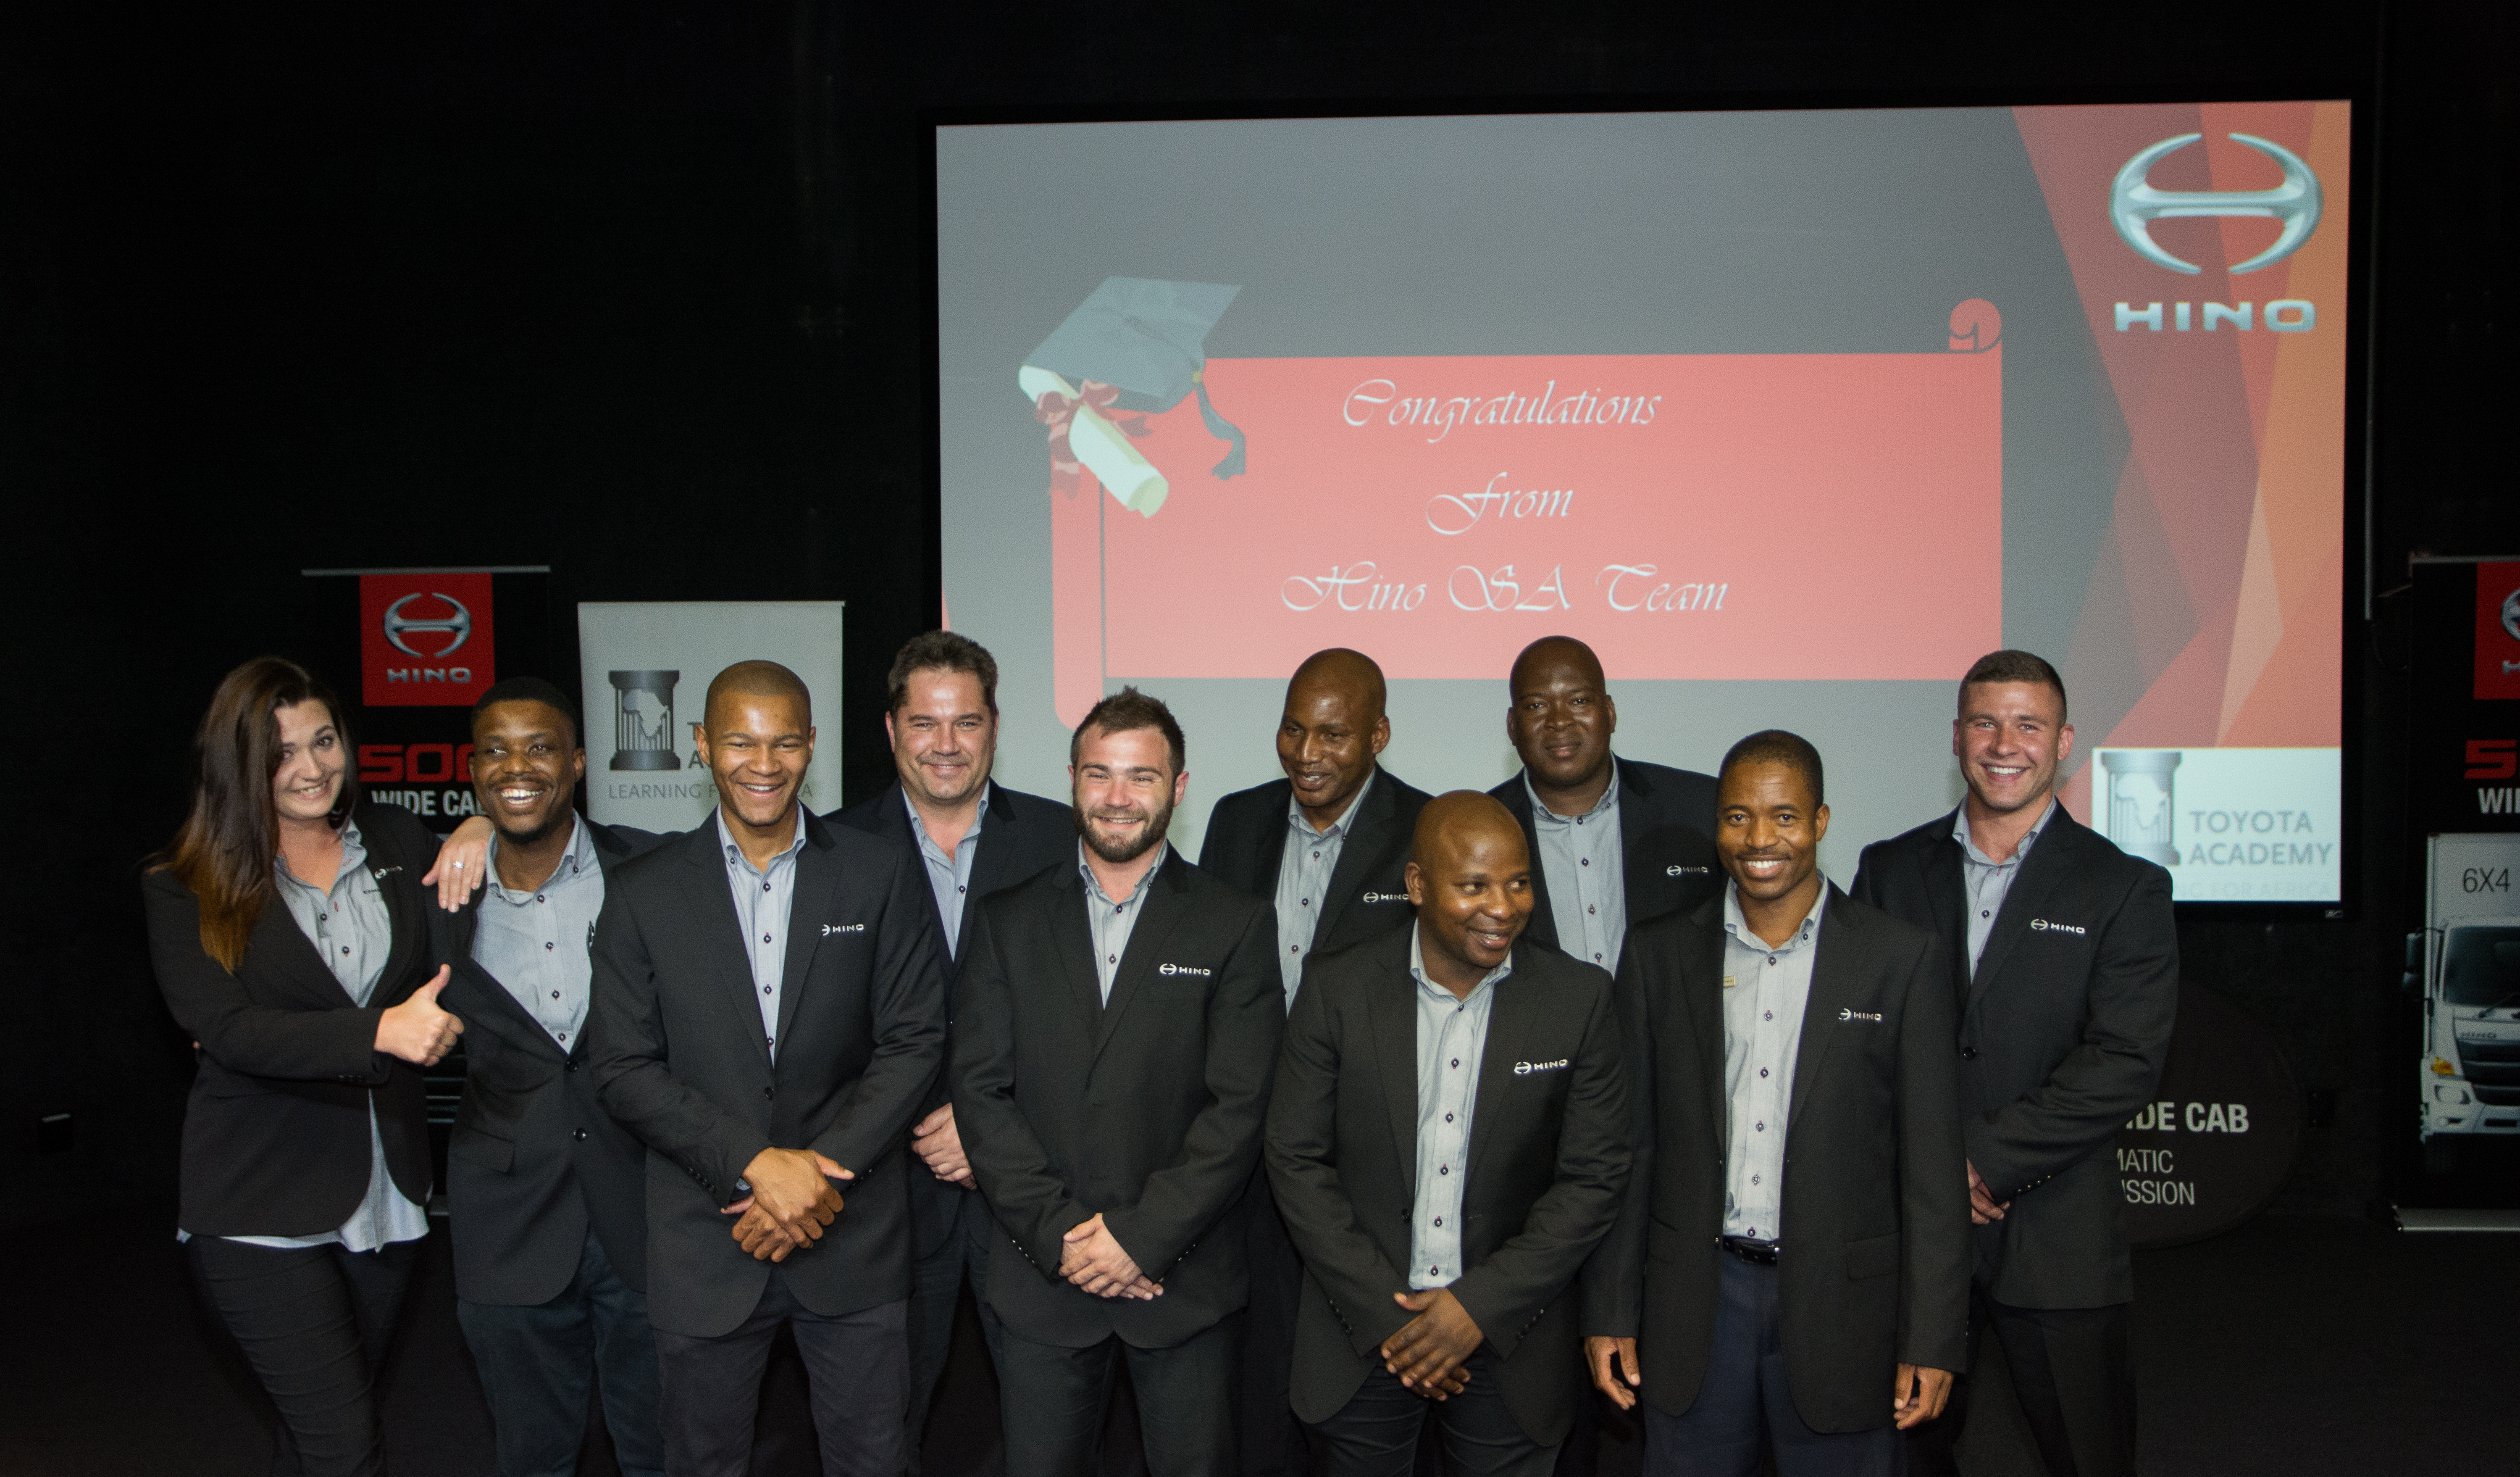 LATEST HINO LEARNERSHIP PROGRAMME PROVES VERY SUCCESSFUL